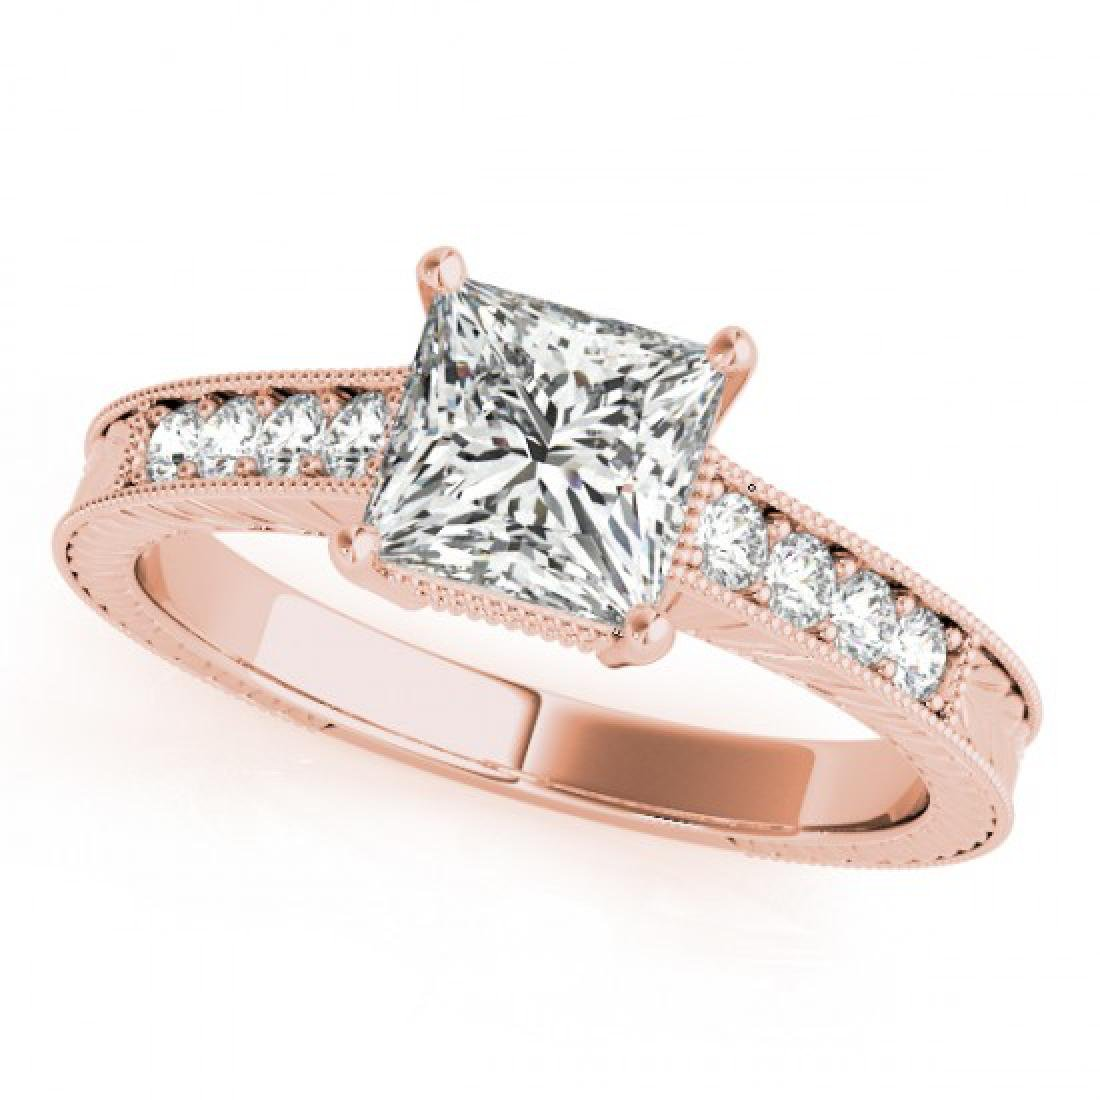 0.65 CTW Certified VS/SI Princess Diamond Solitaire